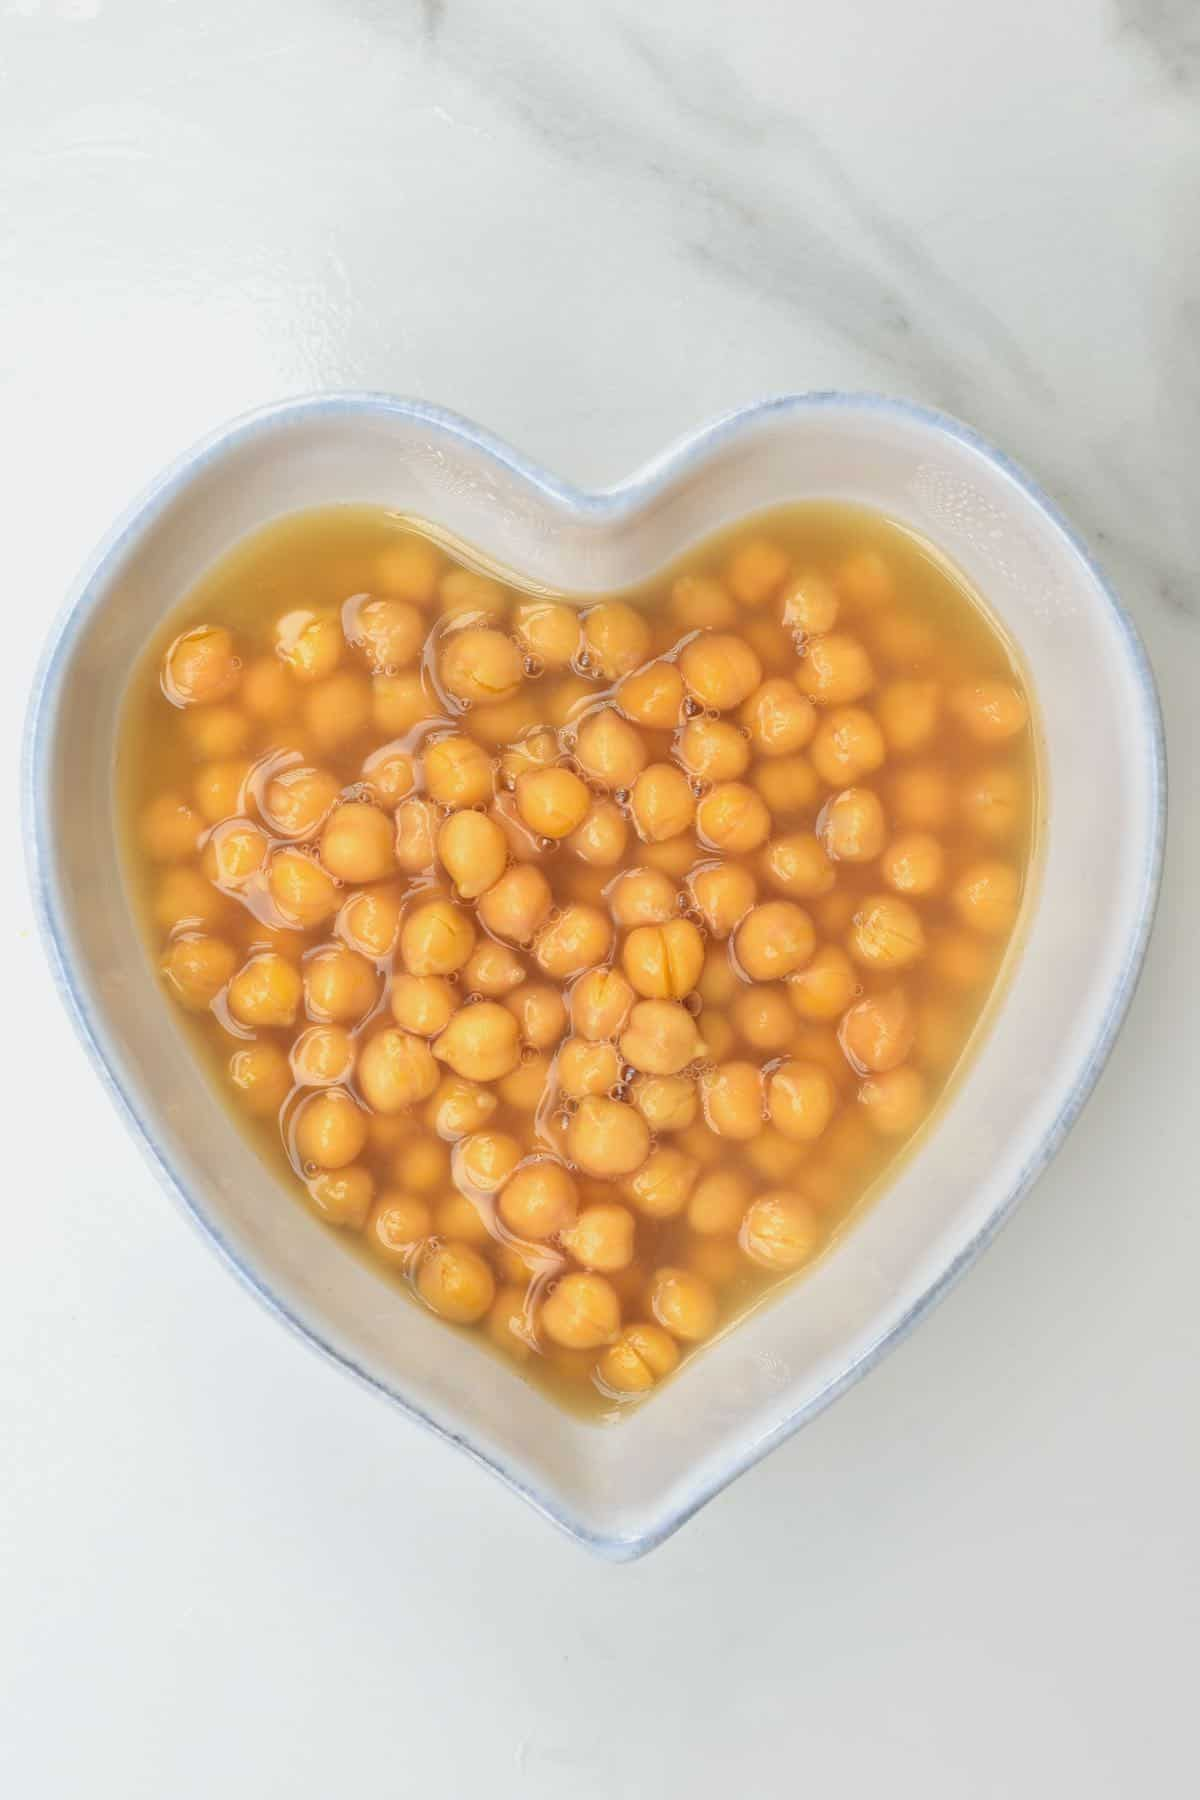 A bowl with cooked chickpeas